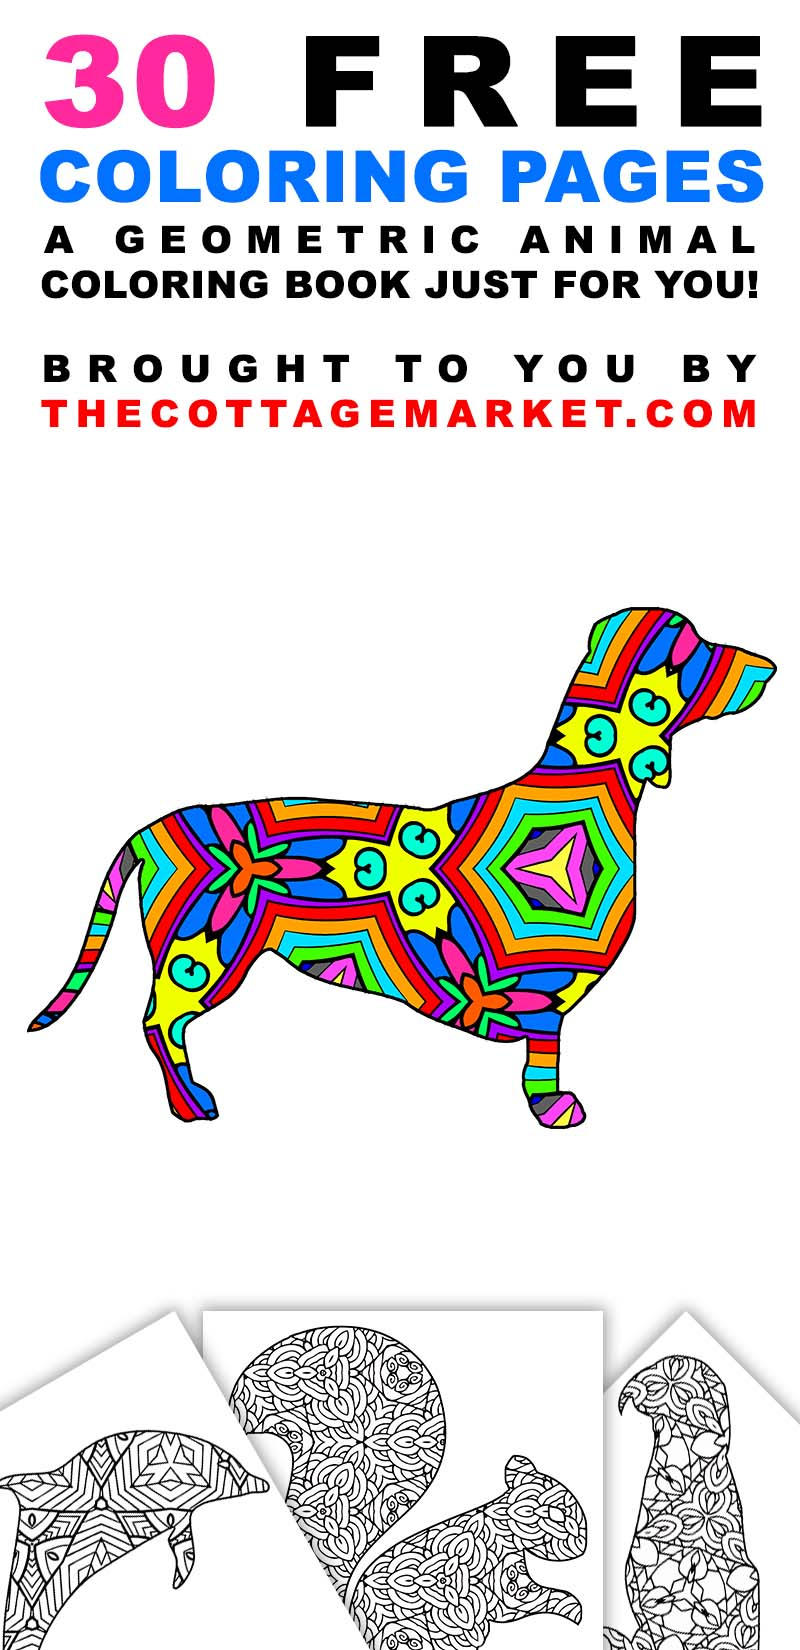 Animals Coloring Pages 30 Free Printable Geometric Animal Coloring Pages The Cottage Market